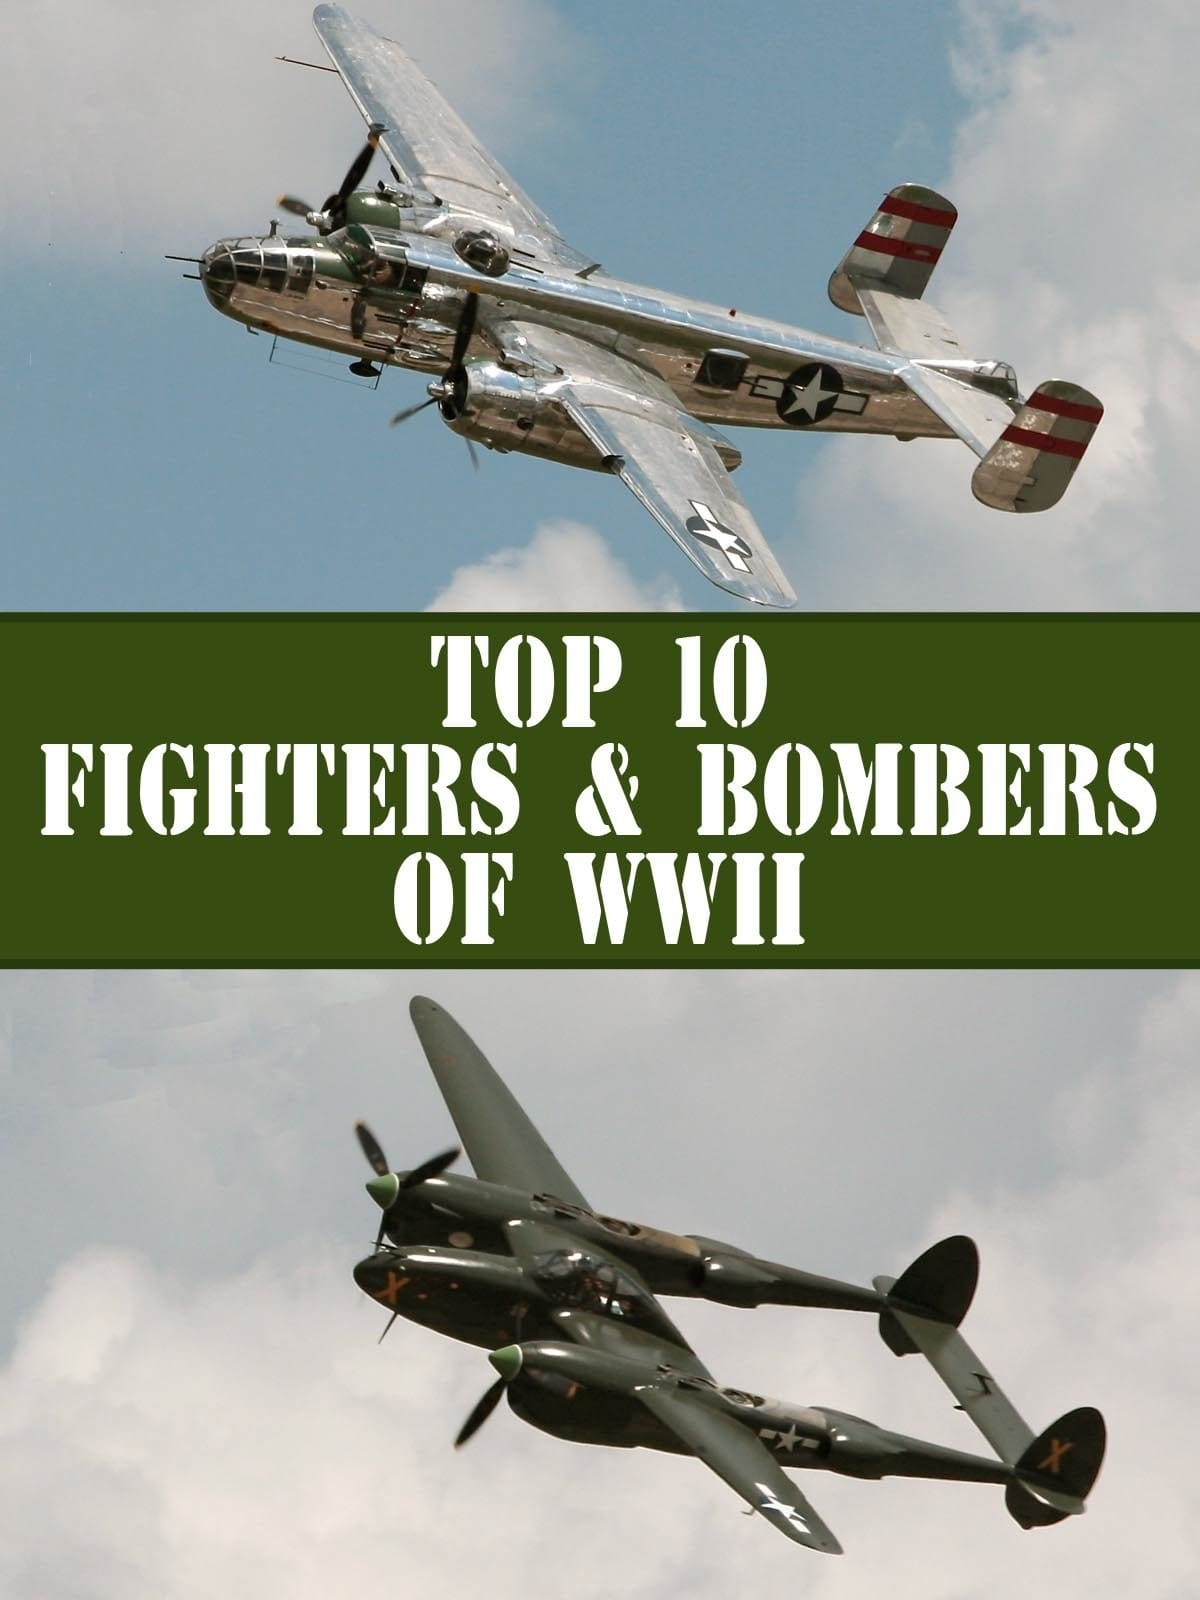 The Top 10 Fighters and Bombers of WWII on FREECABLE TV